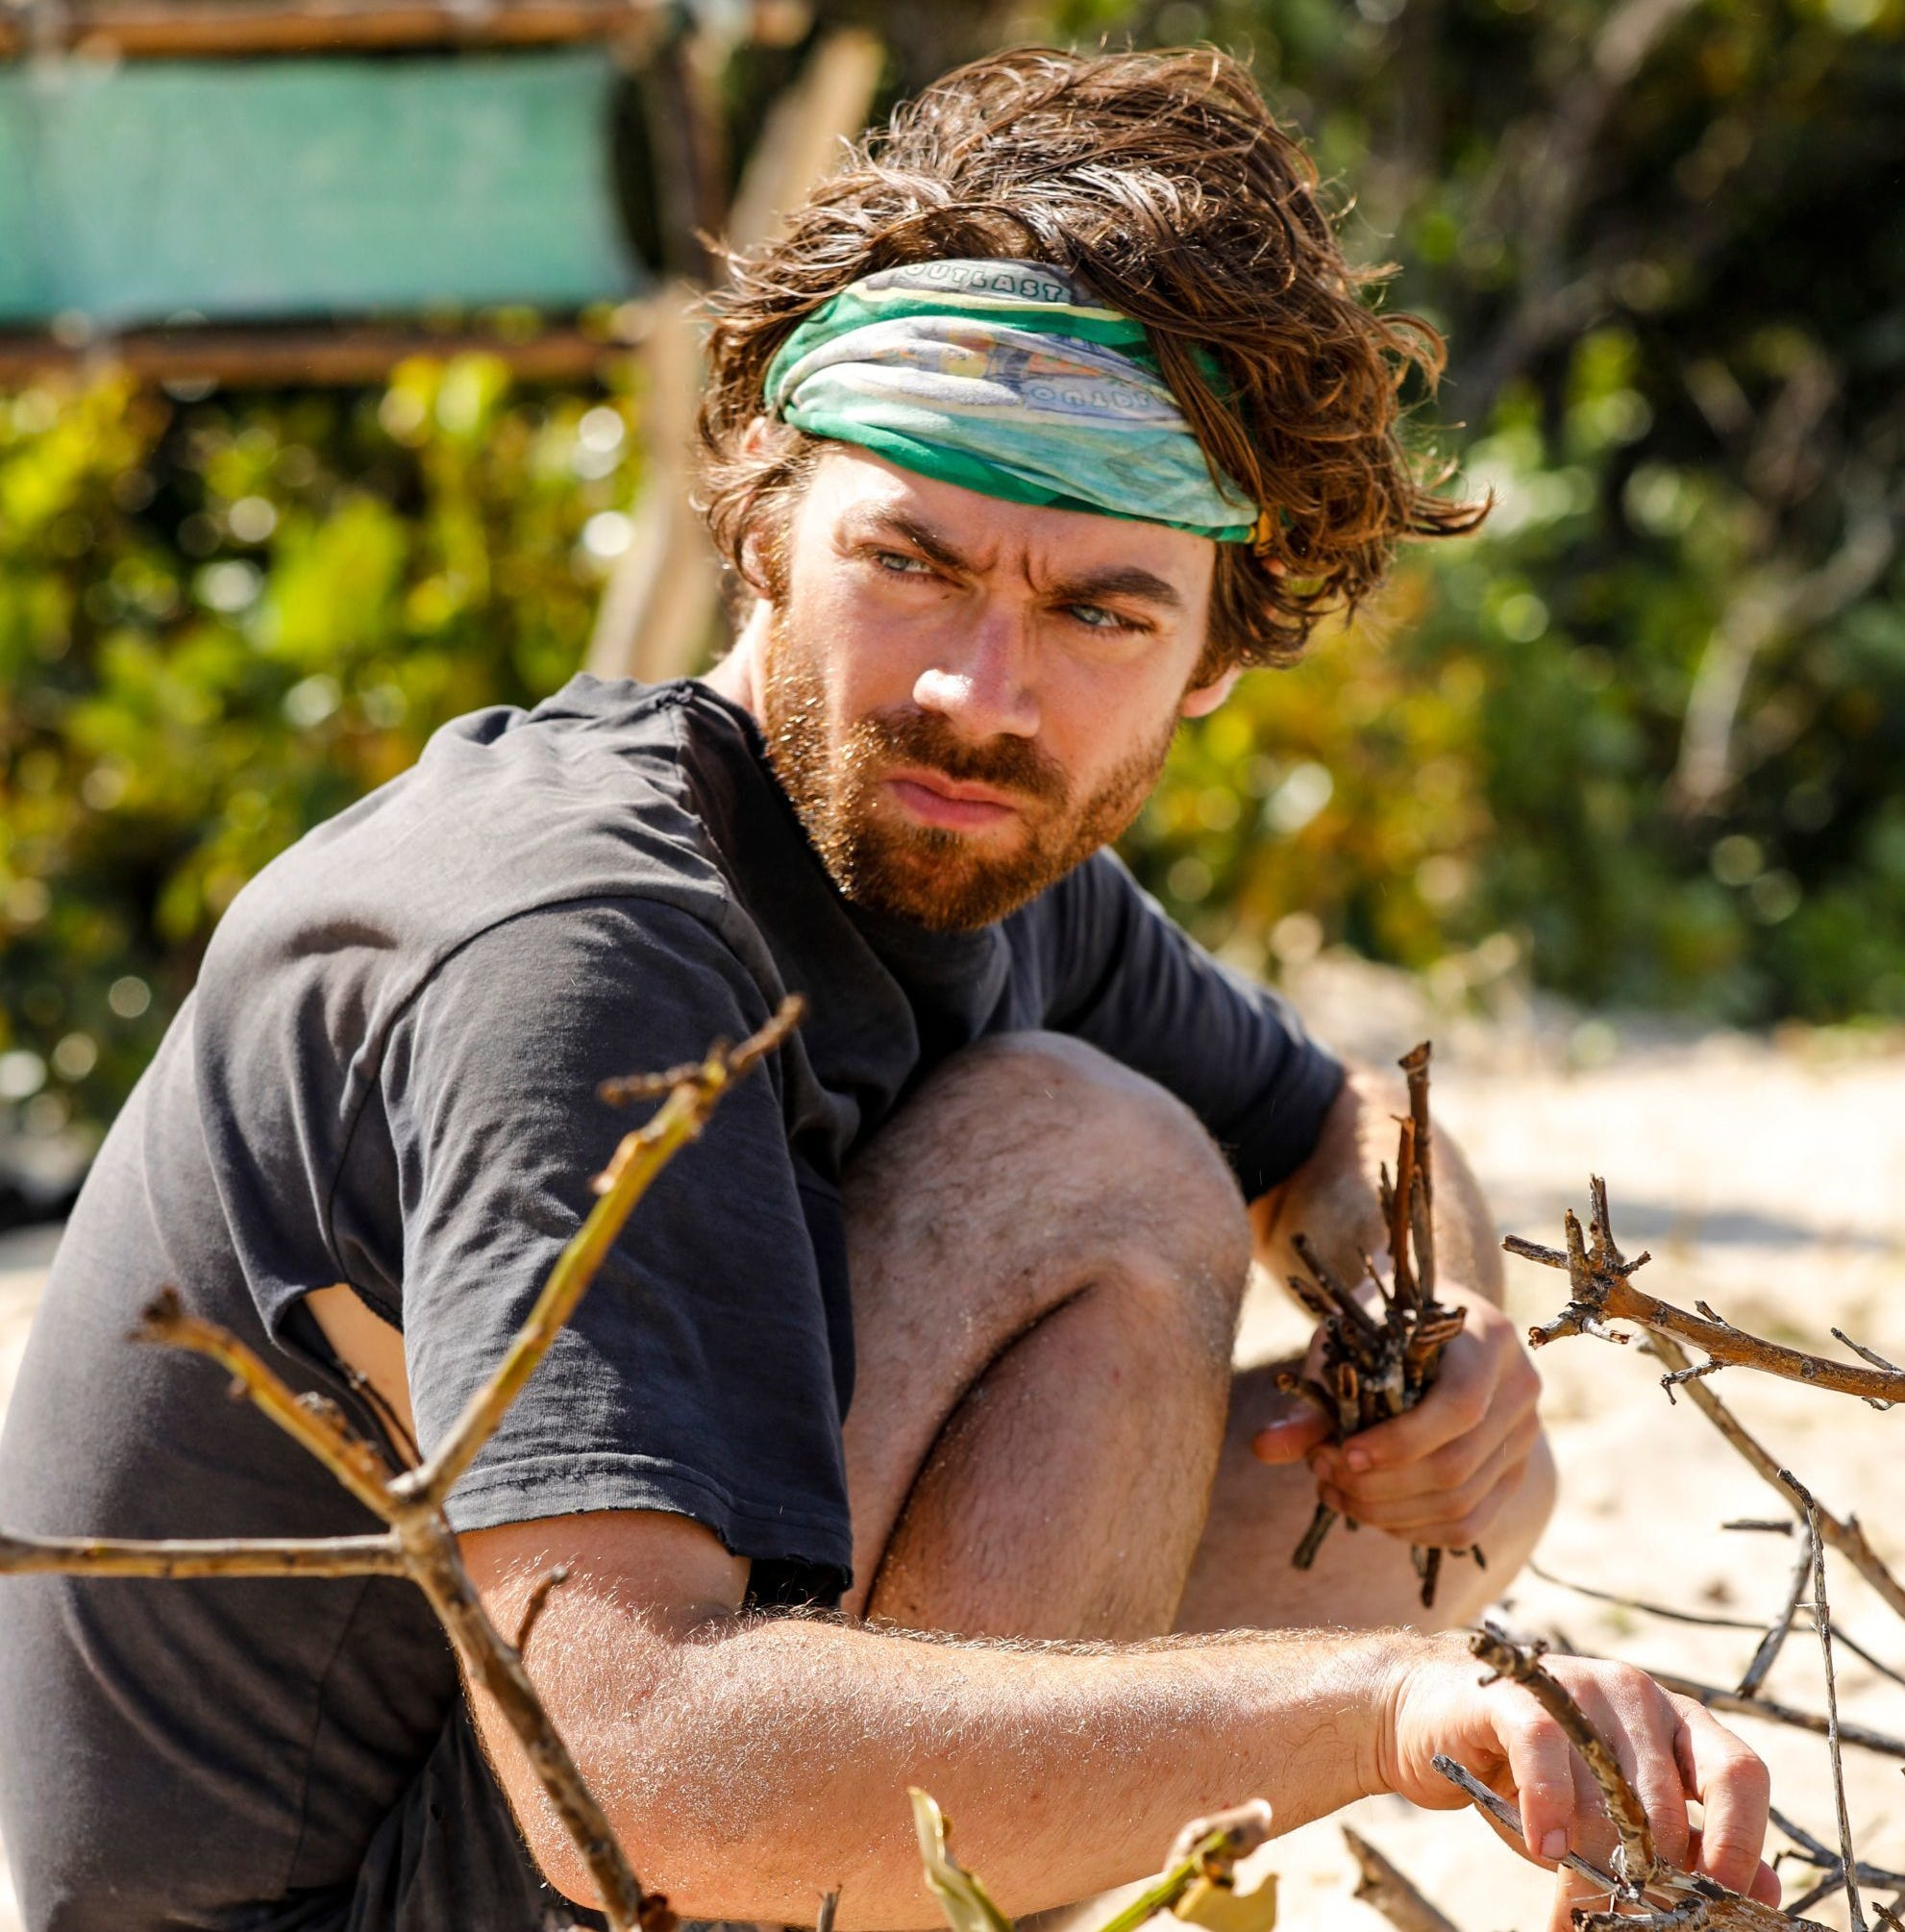 'Survivor' reality TV star Christian Hubicki to answer questions about life on Fiji